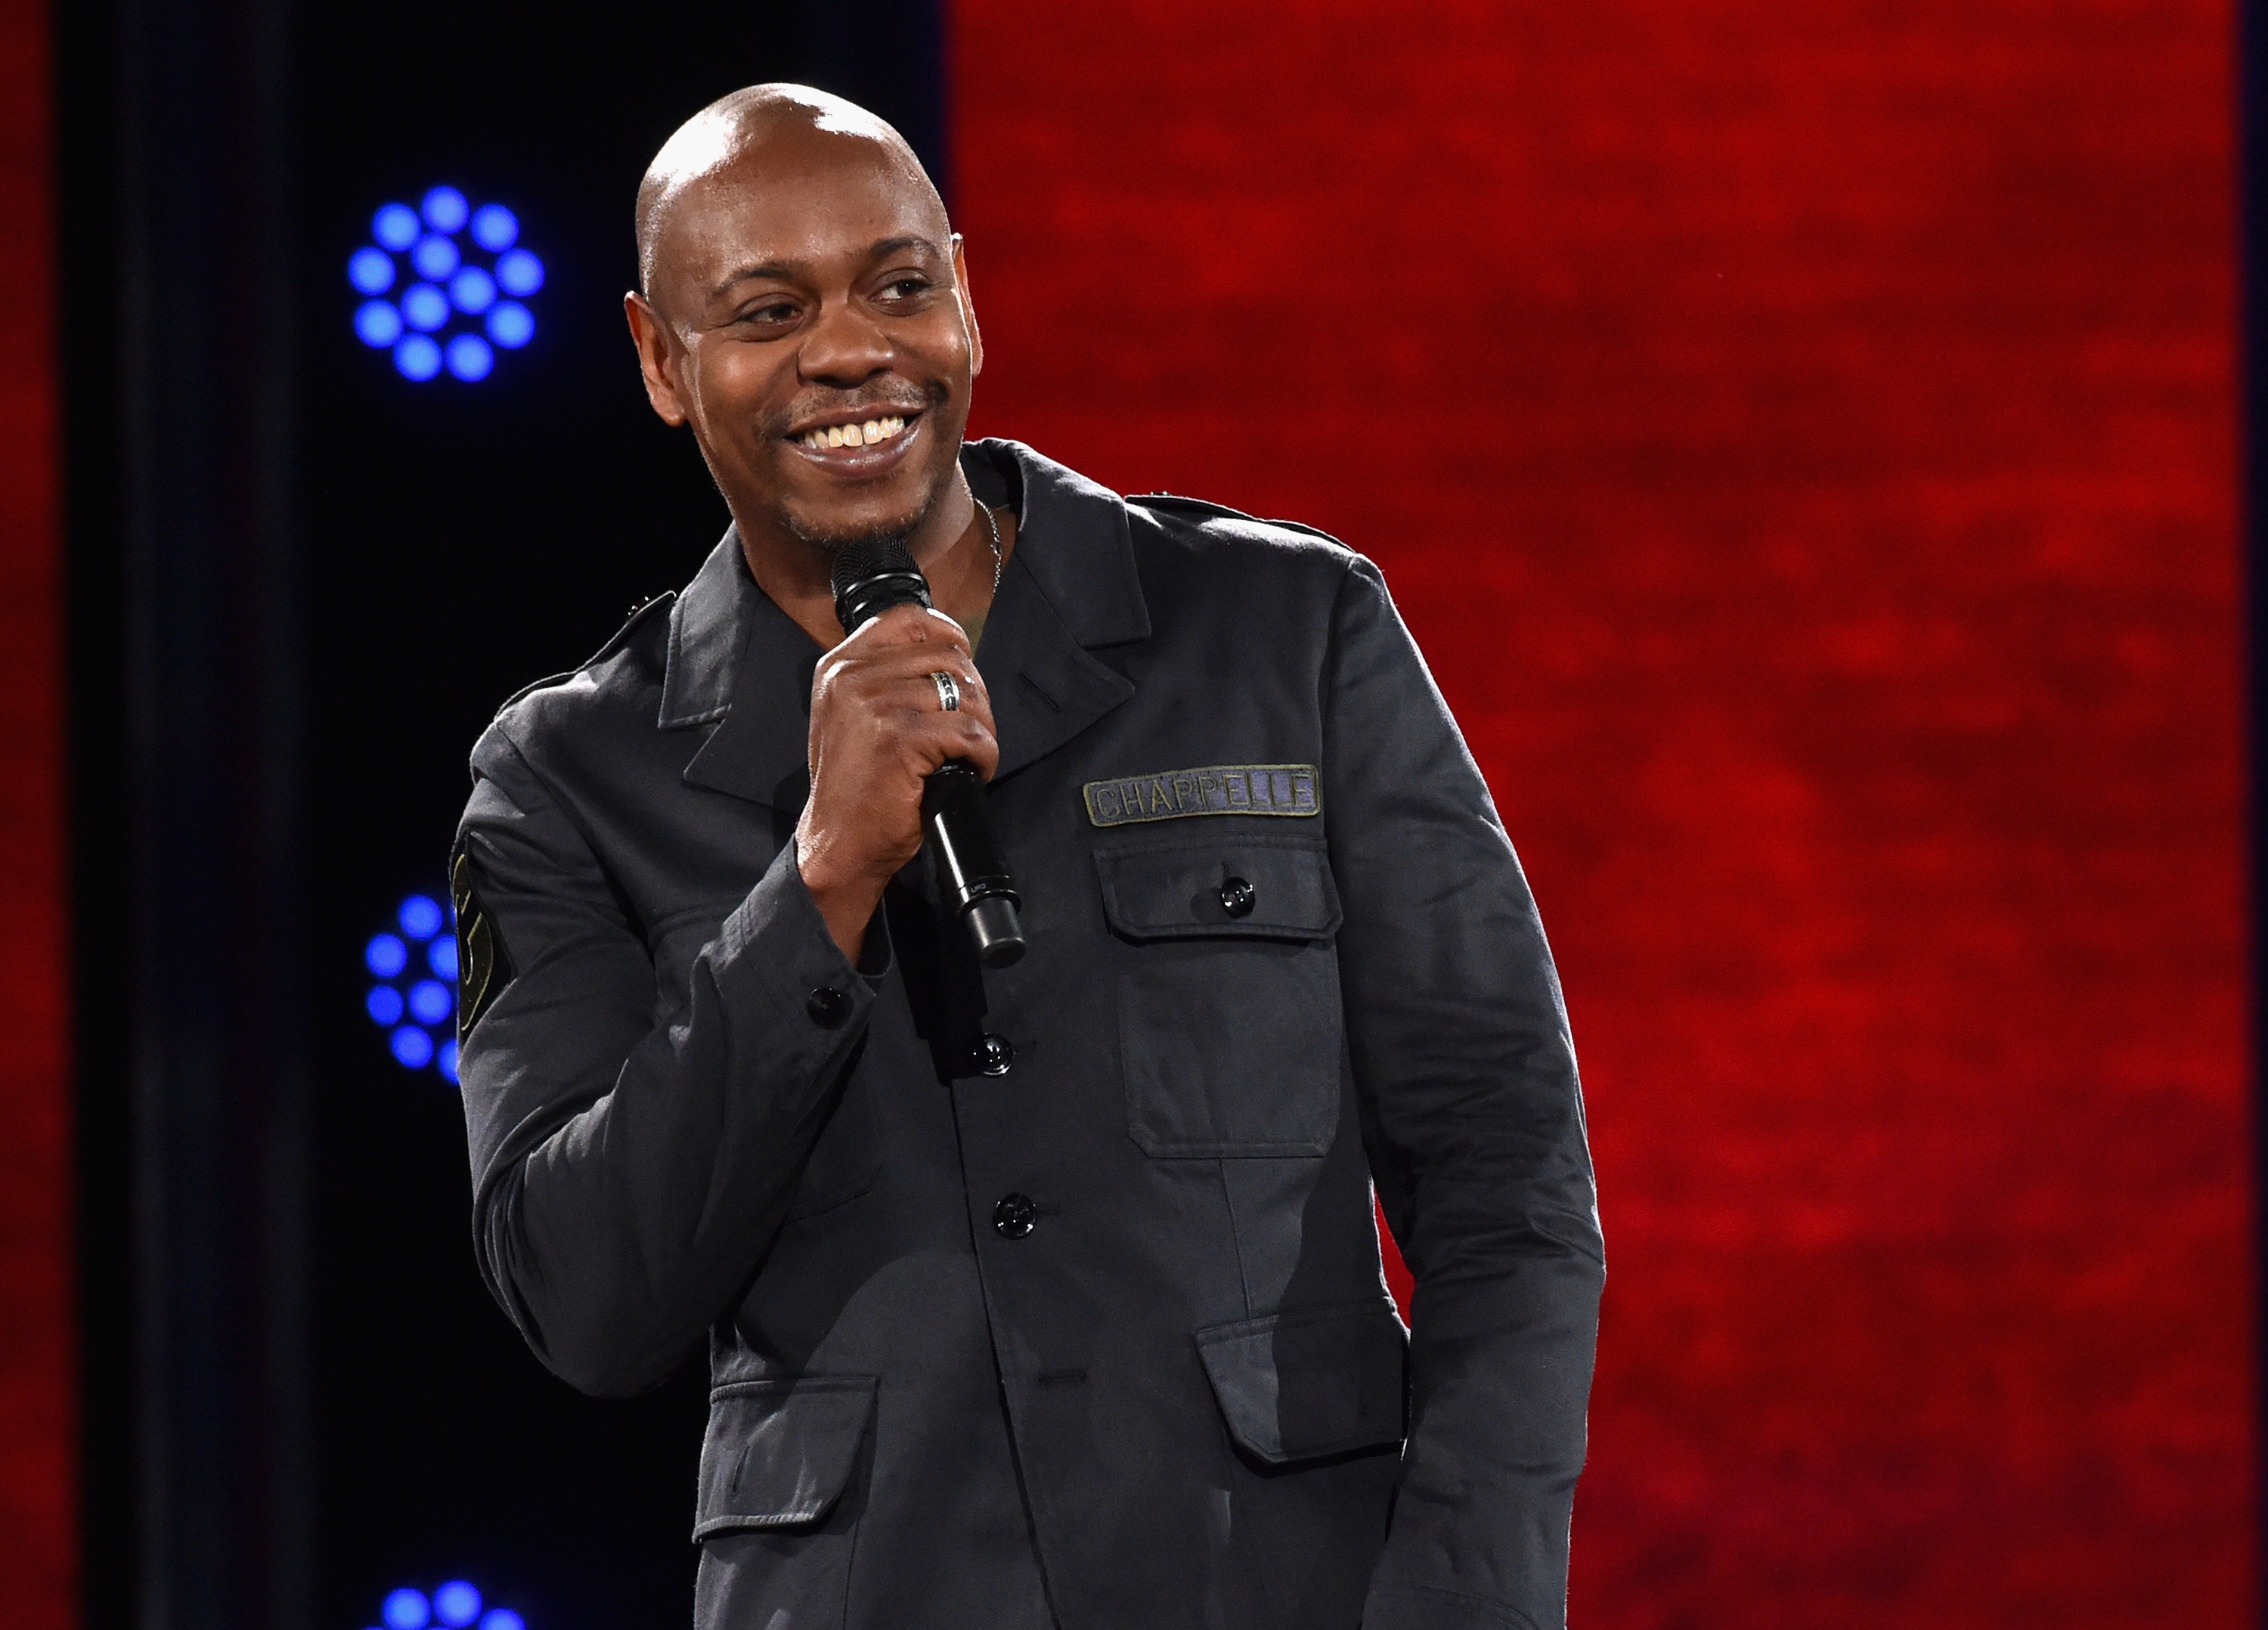 Watch: Dave Chappelle Returns To TV With A Powerful 'SNL' Monologue